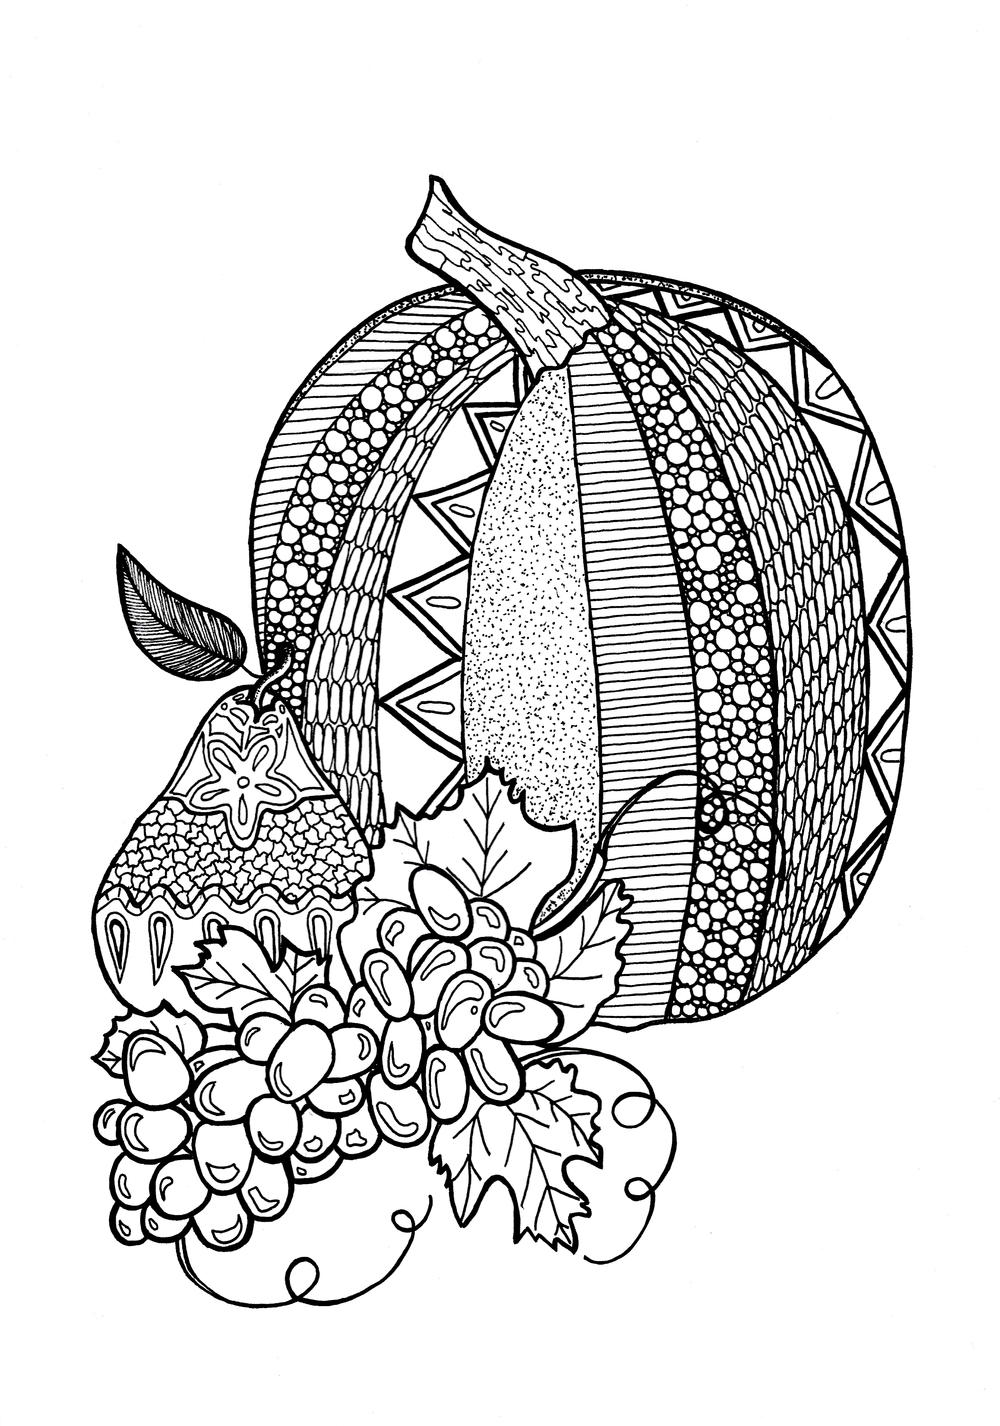 Textured Pumpkin Adult Coloring Page | AllFreePaperCrafts.com